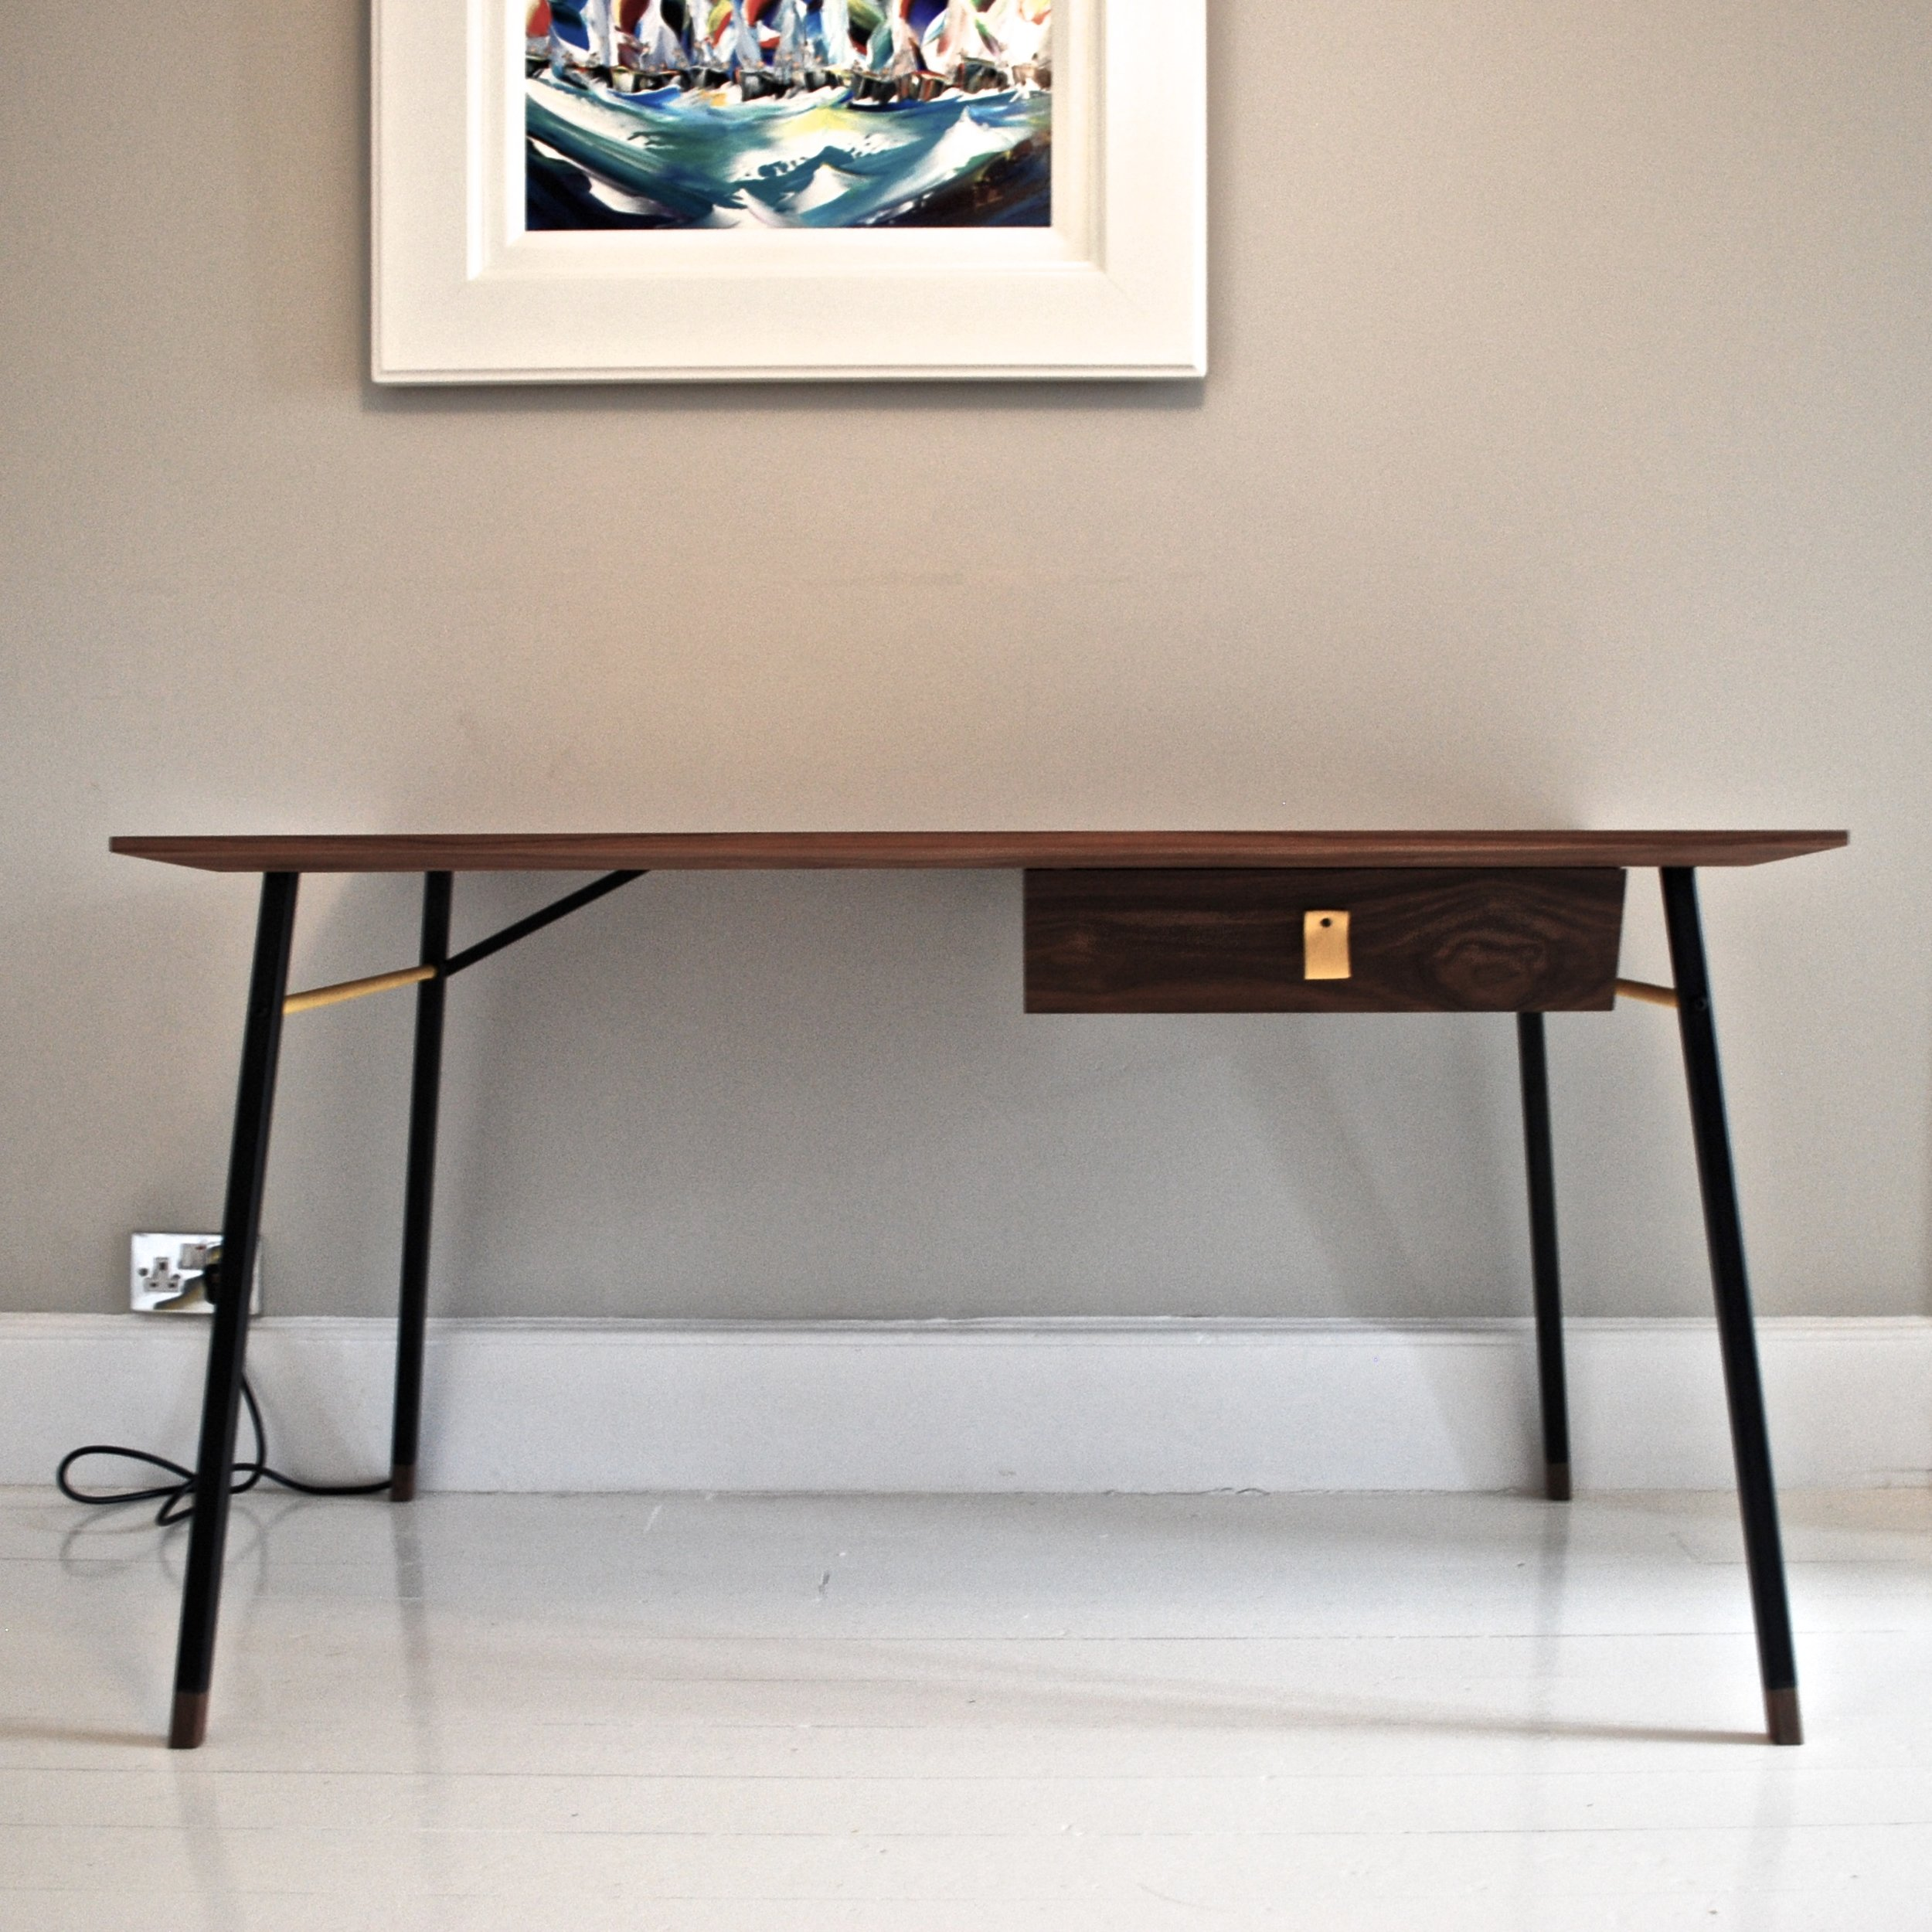 bespoke walnut, steel and leather desk